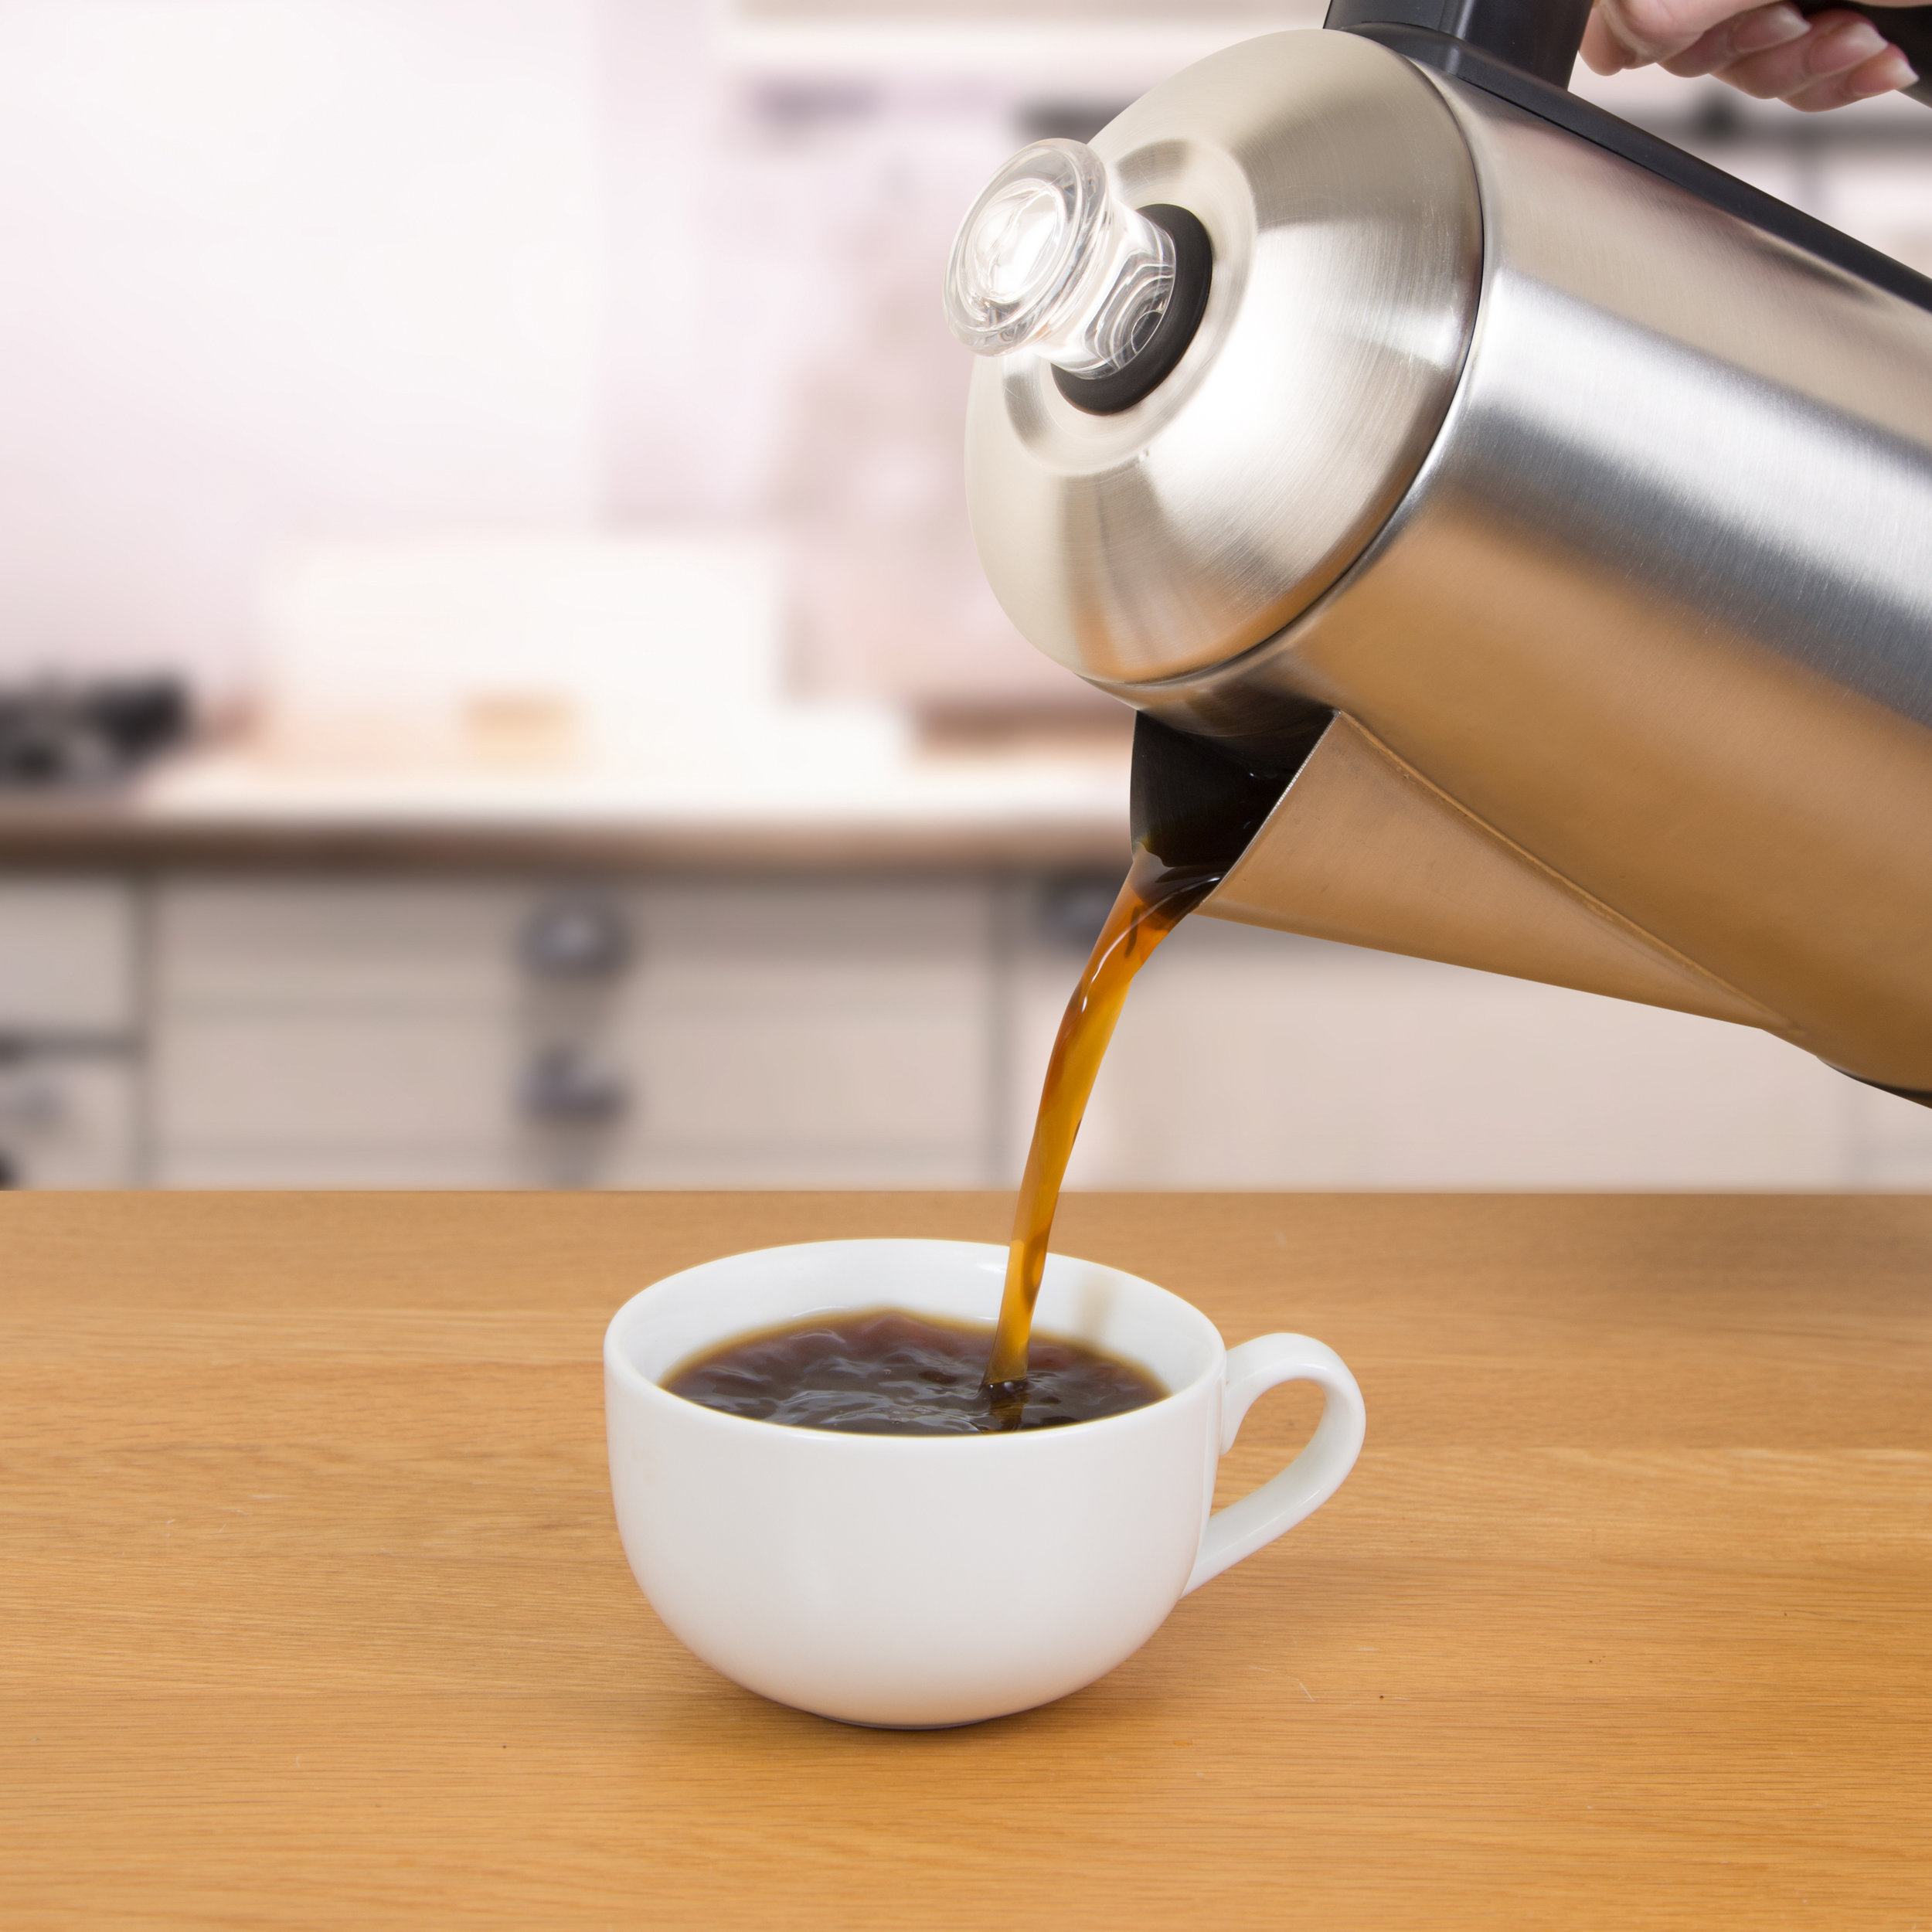 Pouring coffee with the 1.5L Electric Coffee Percolator